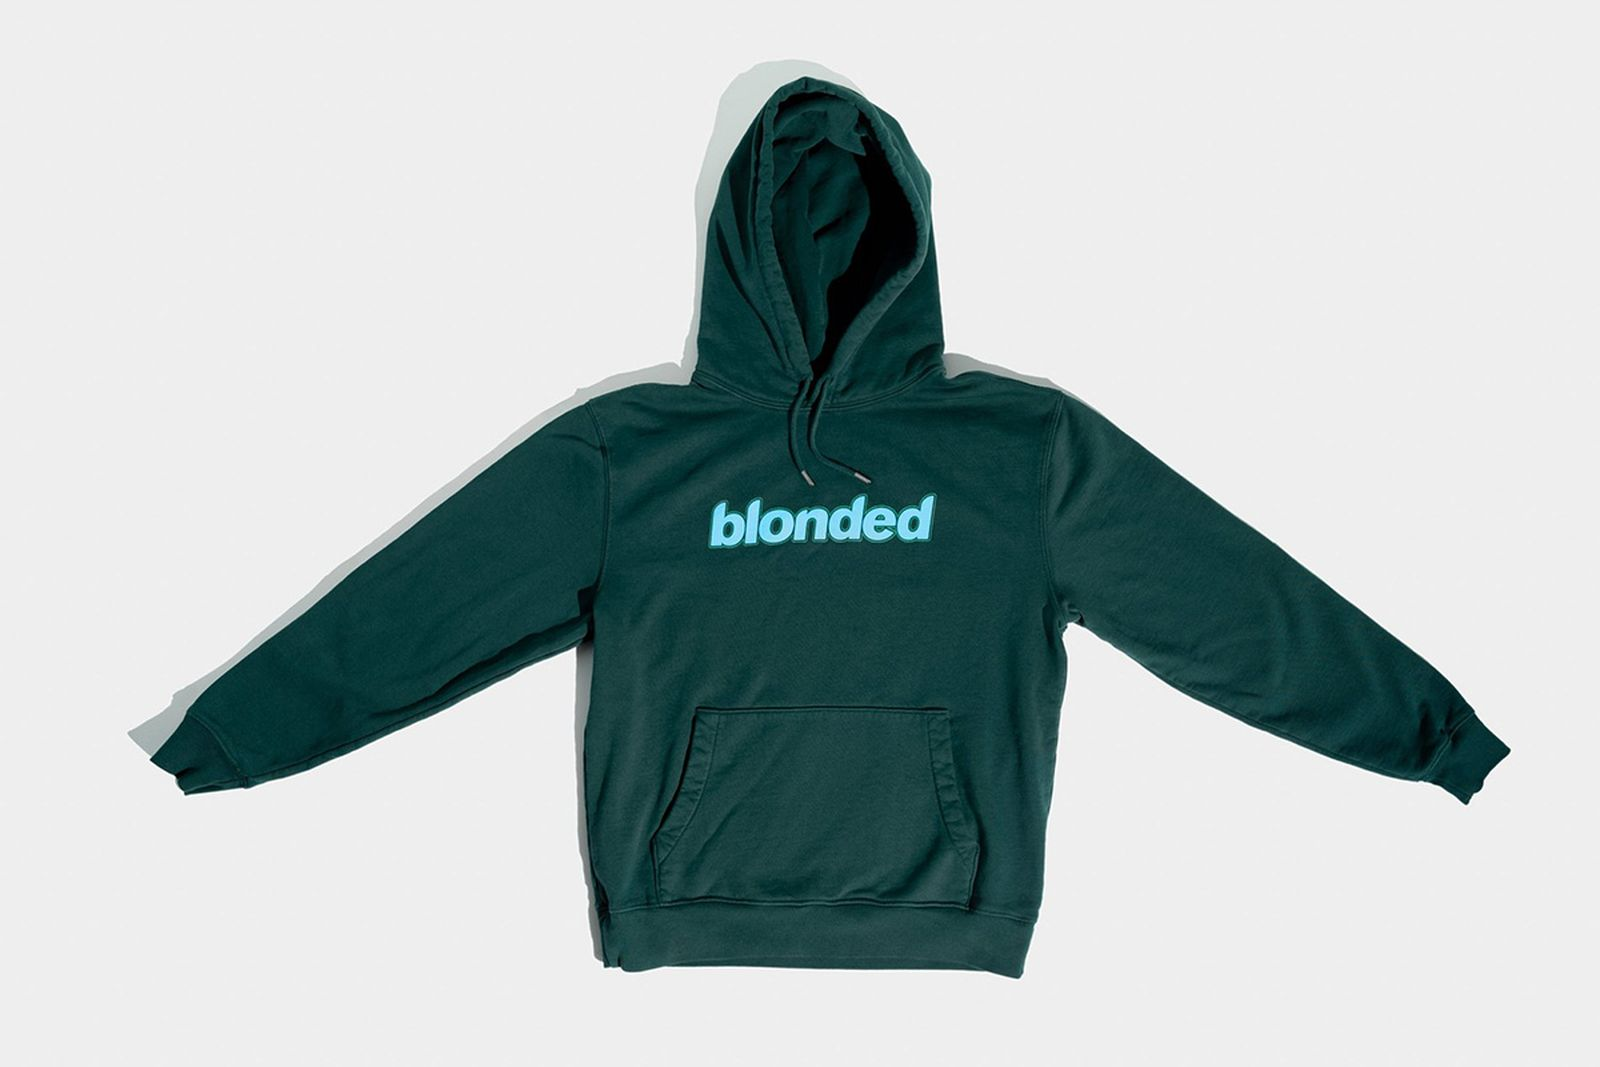 frank-ocean-new-merch-10